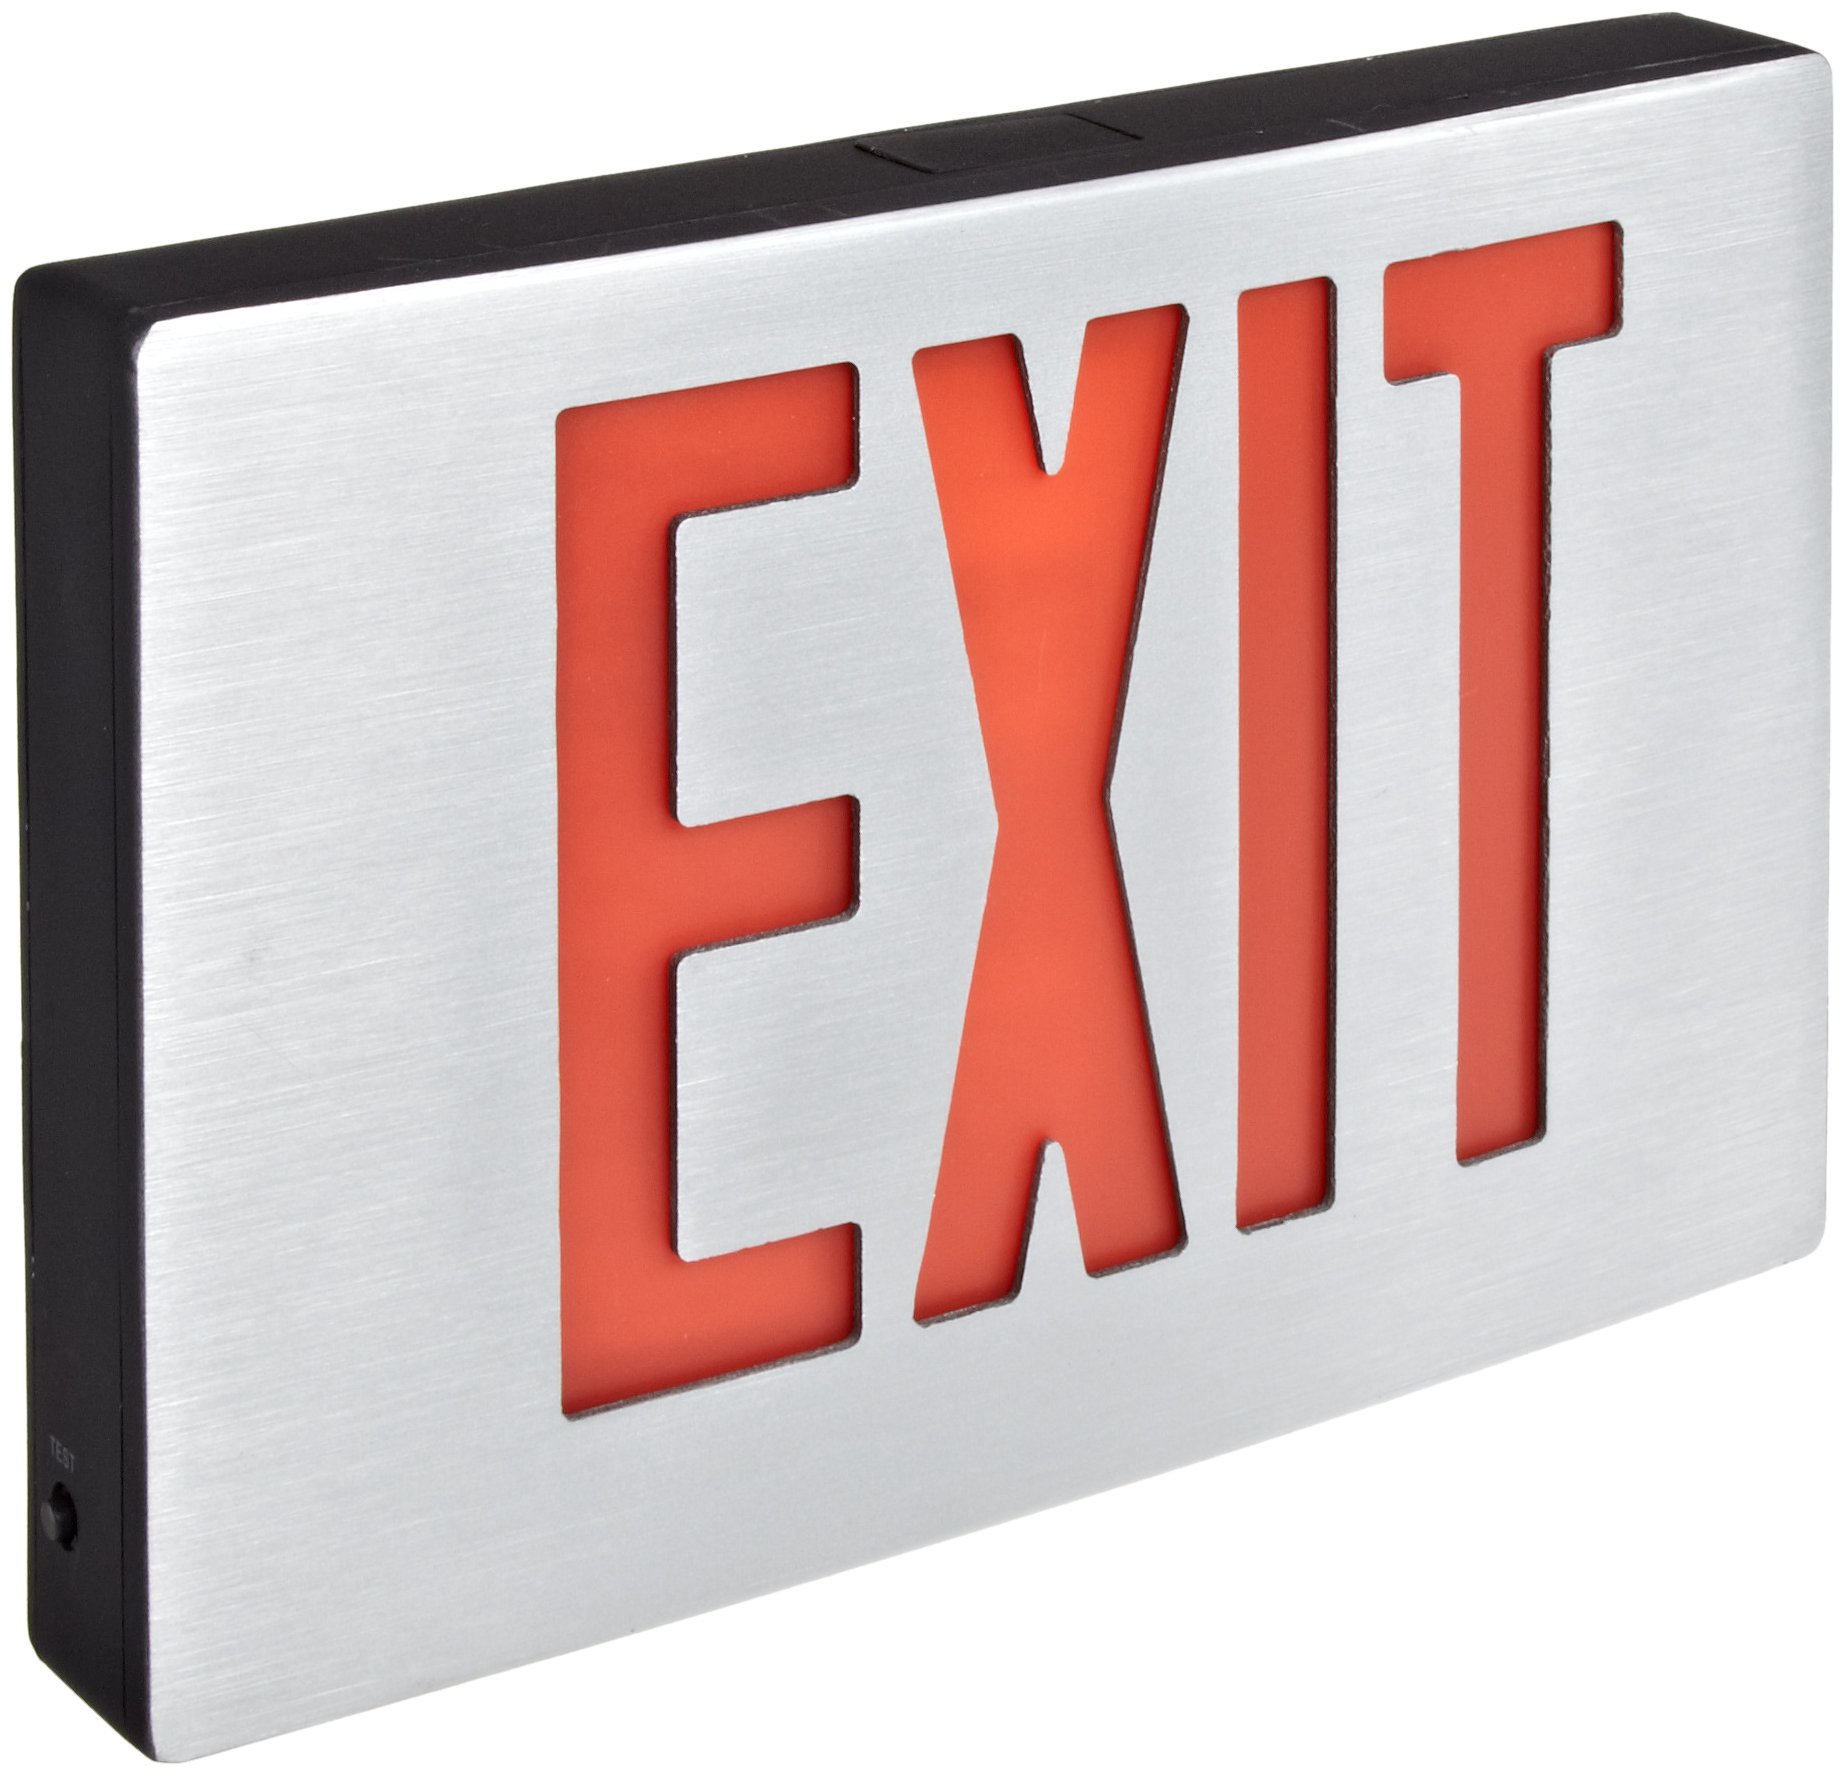 Morris Products 73343 Cast Aluminum LED Exit Sign, Red Letter Color, Brushed Aluminum Face Color, Black Housing Finish